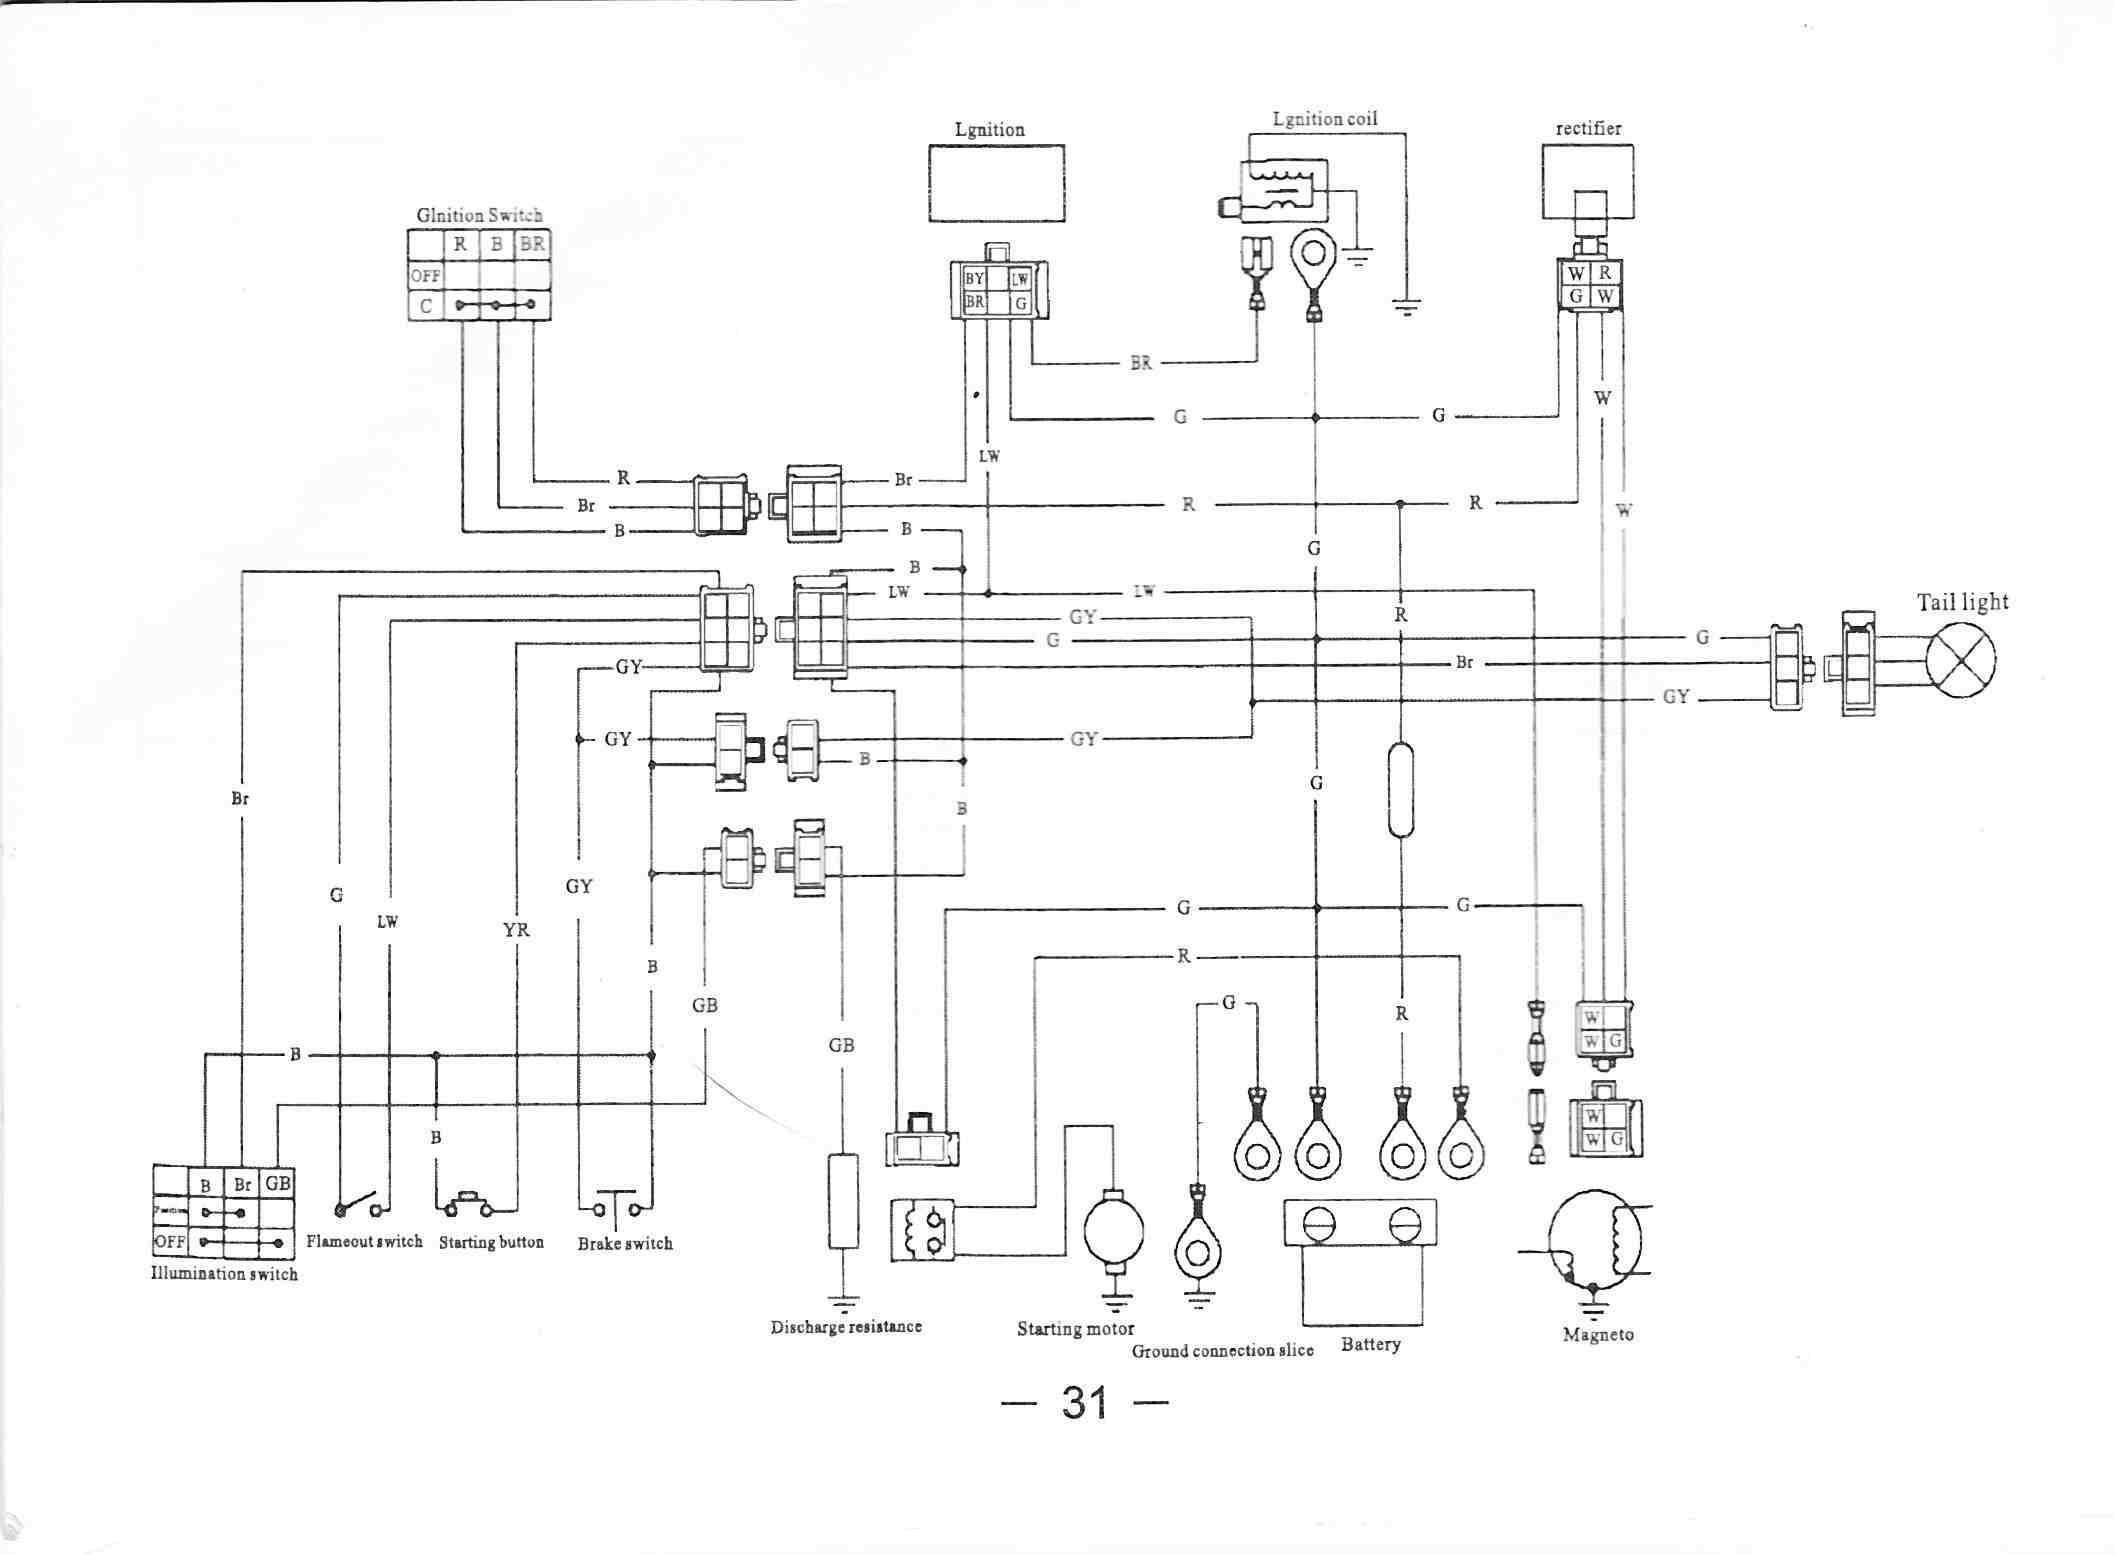 timberwolf atv wiring diagrams for electronic schematics collections atv repair diagram 97 timberwolf wiring schematic 92 f150 dash wiring diagram thetimberwolf 250 atv wiring diagram simple wiring